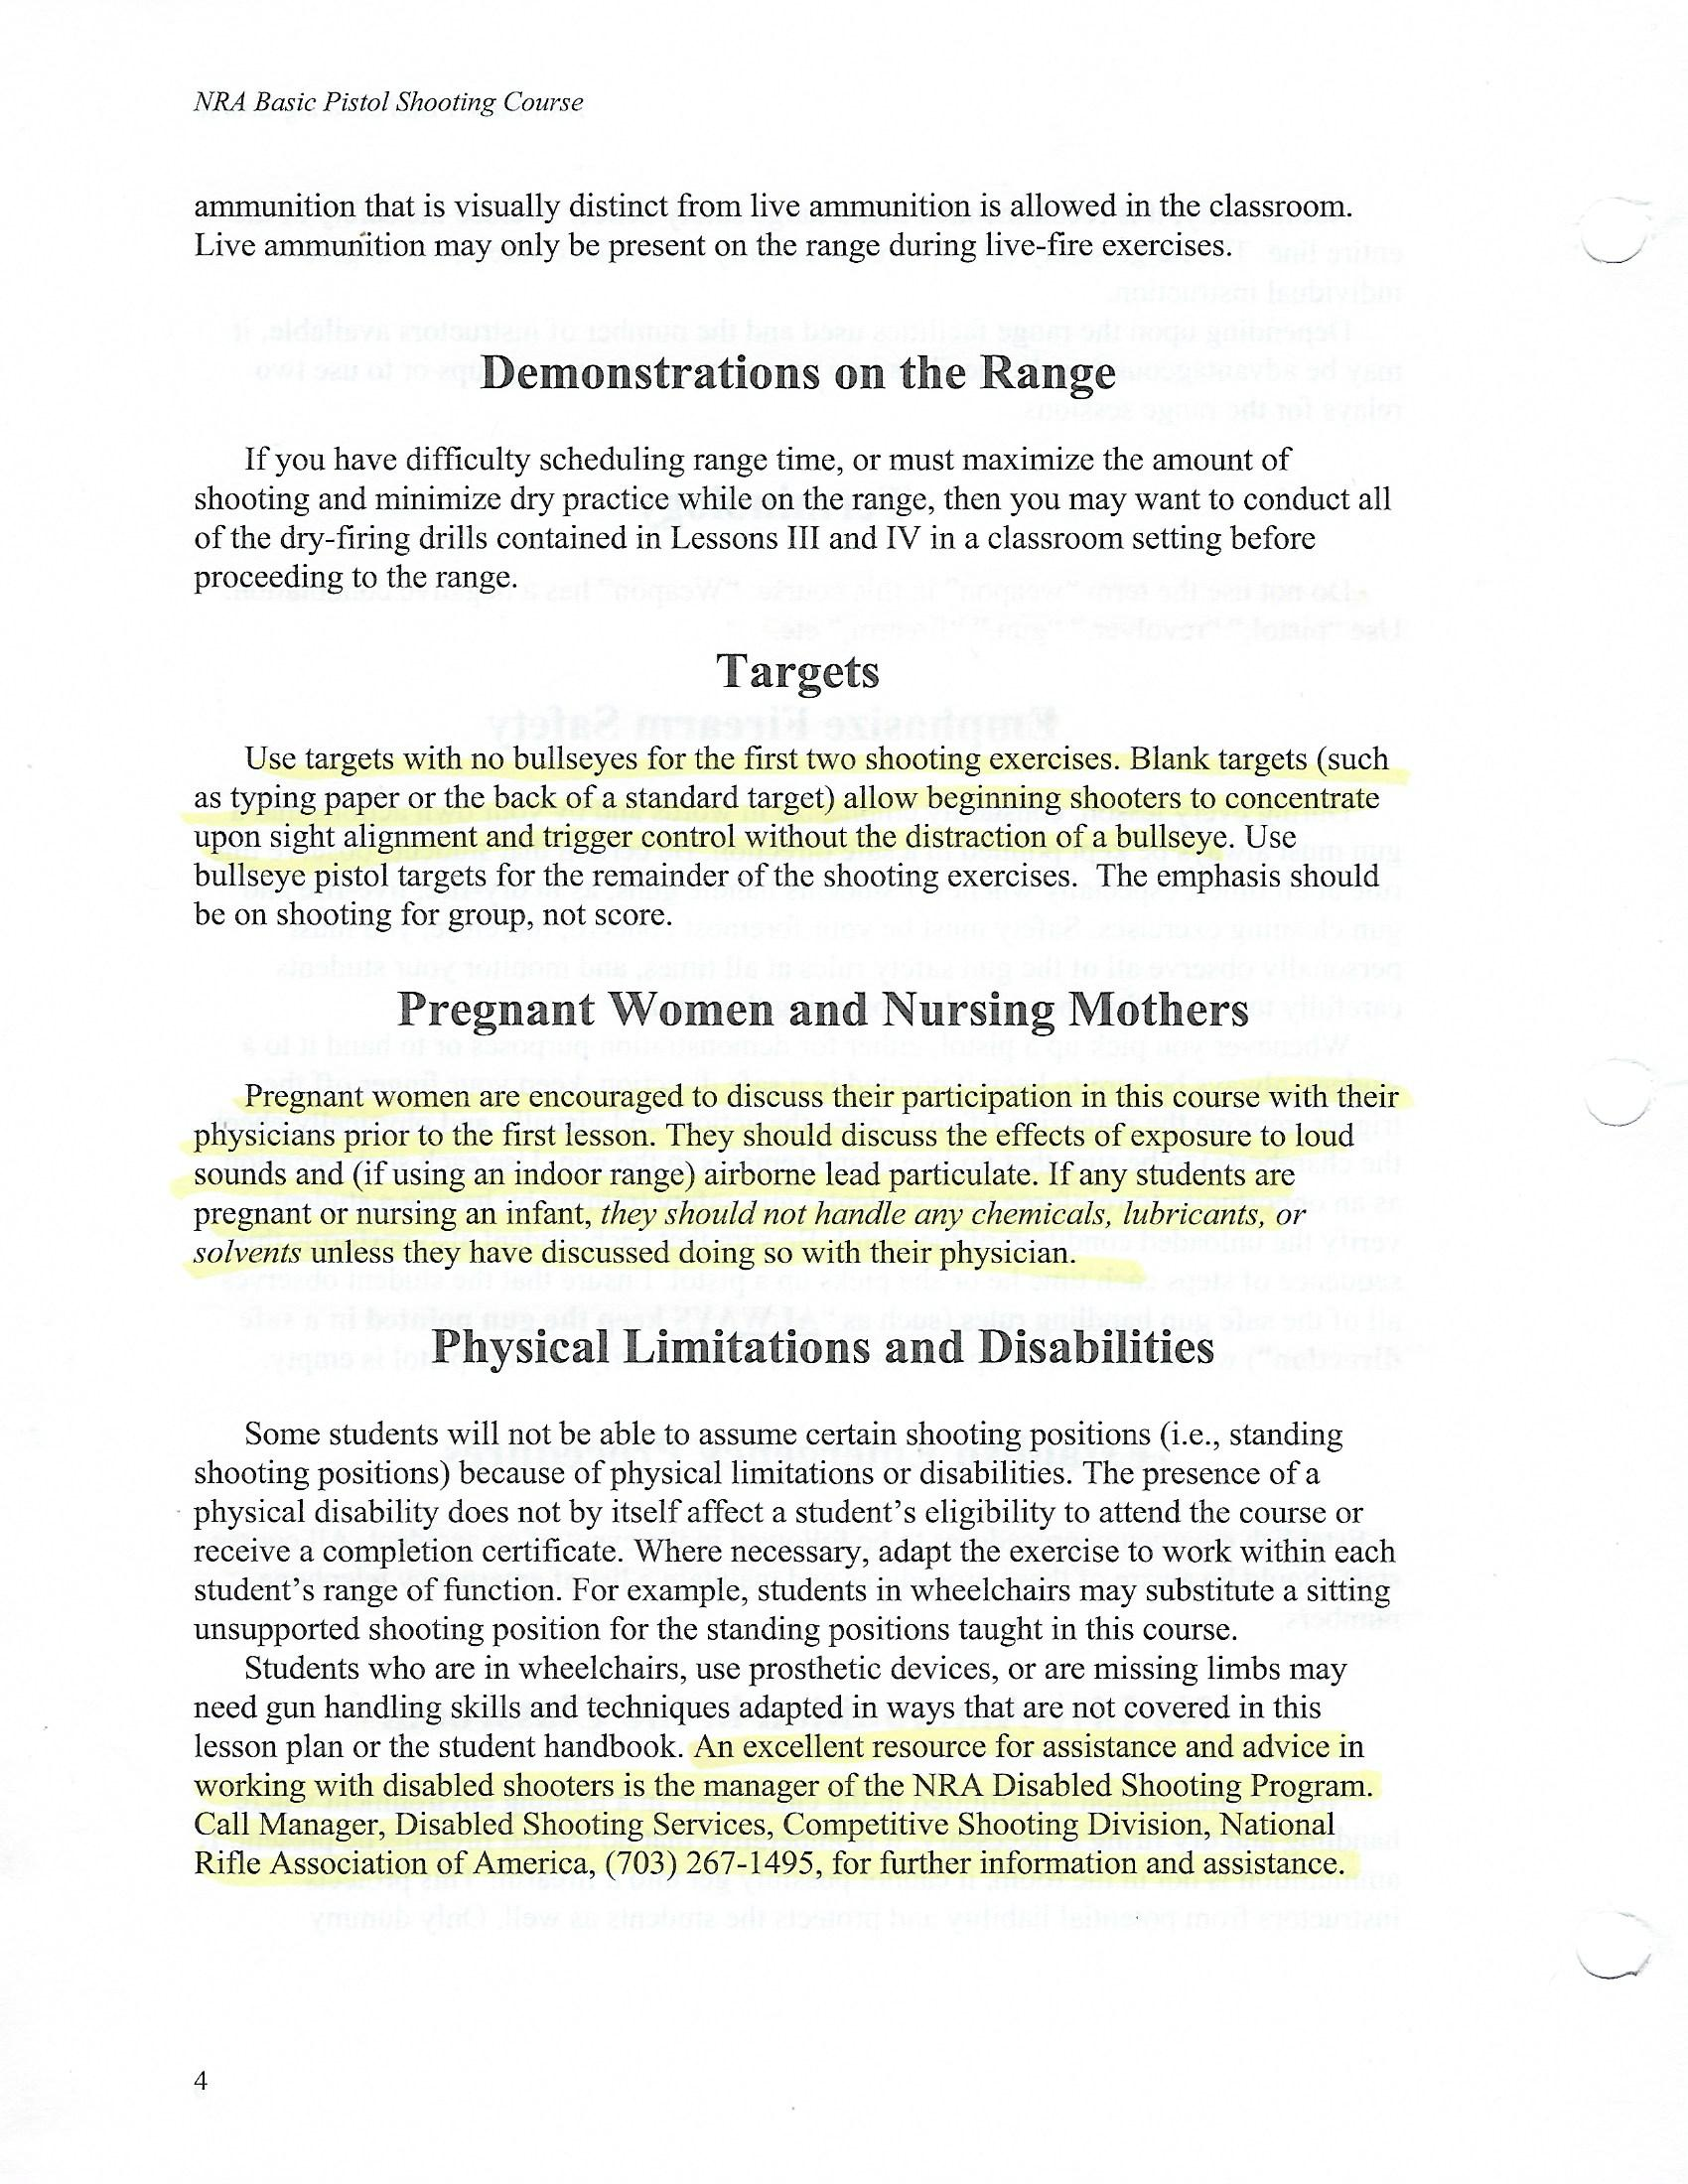 NRA Class Disarm Requirement-firearms-classroom-policy-page-2.jpg